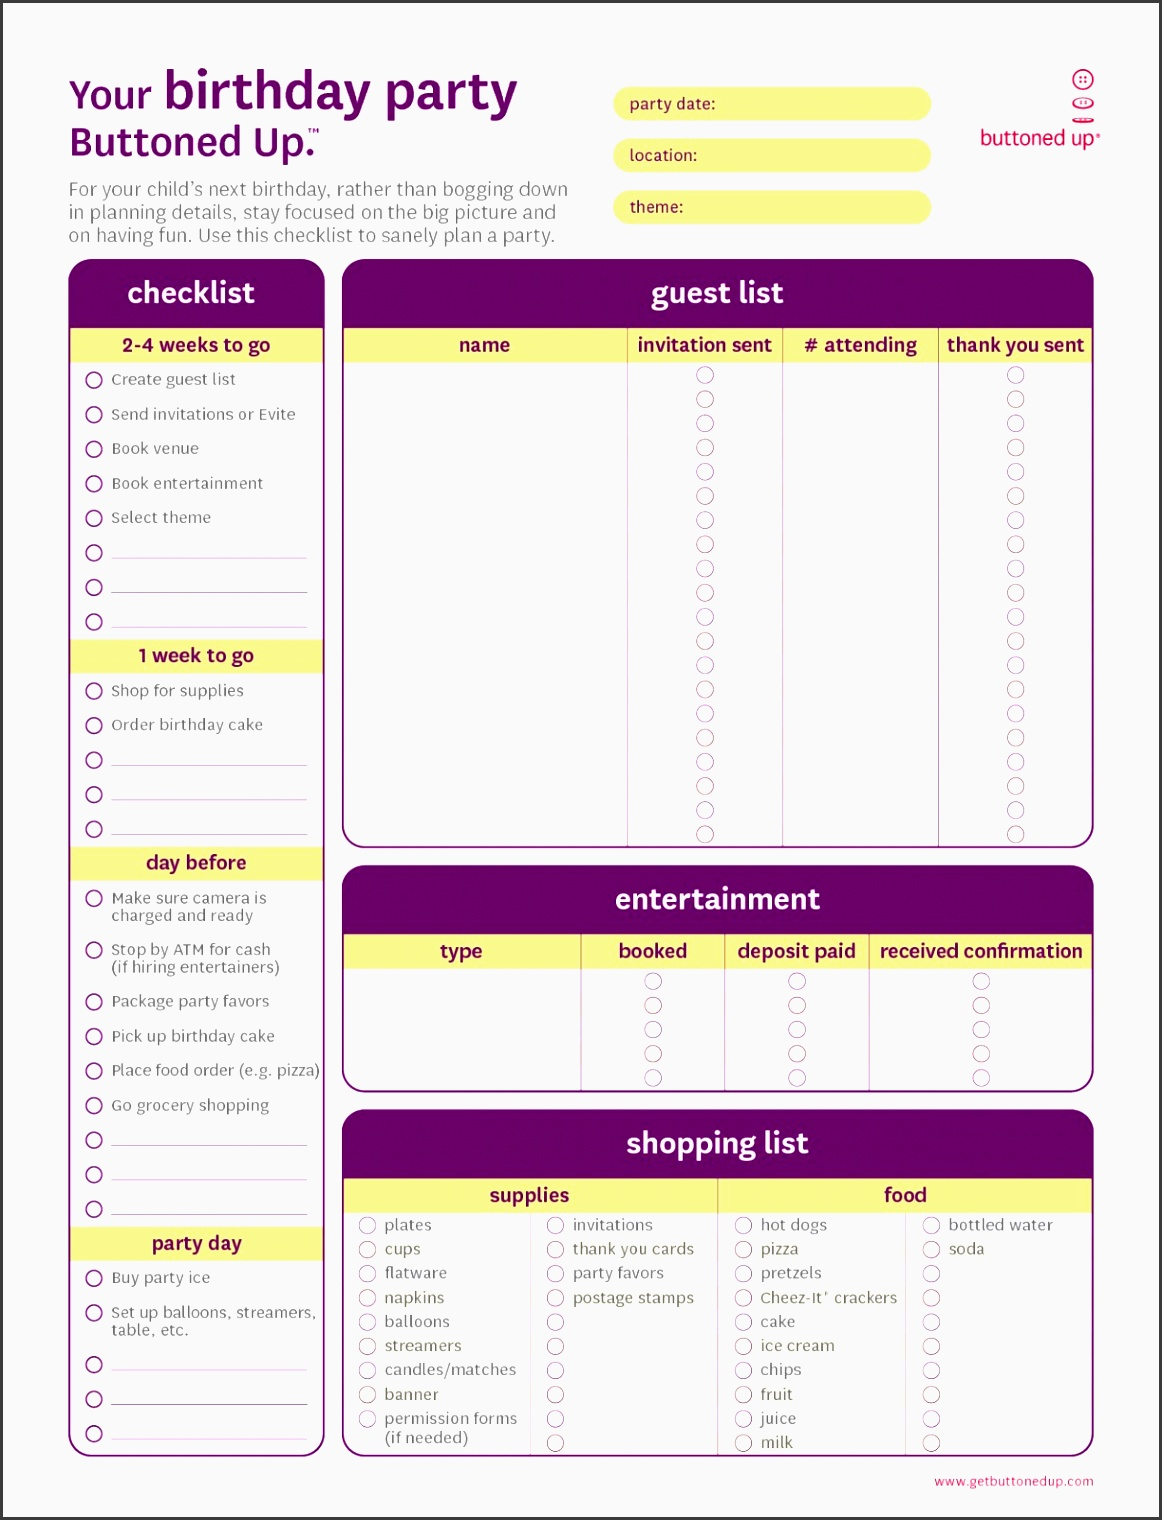 event planning checklist template cover letter event planning checklist templatepartynner invoice template eventnning checklist free business